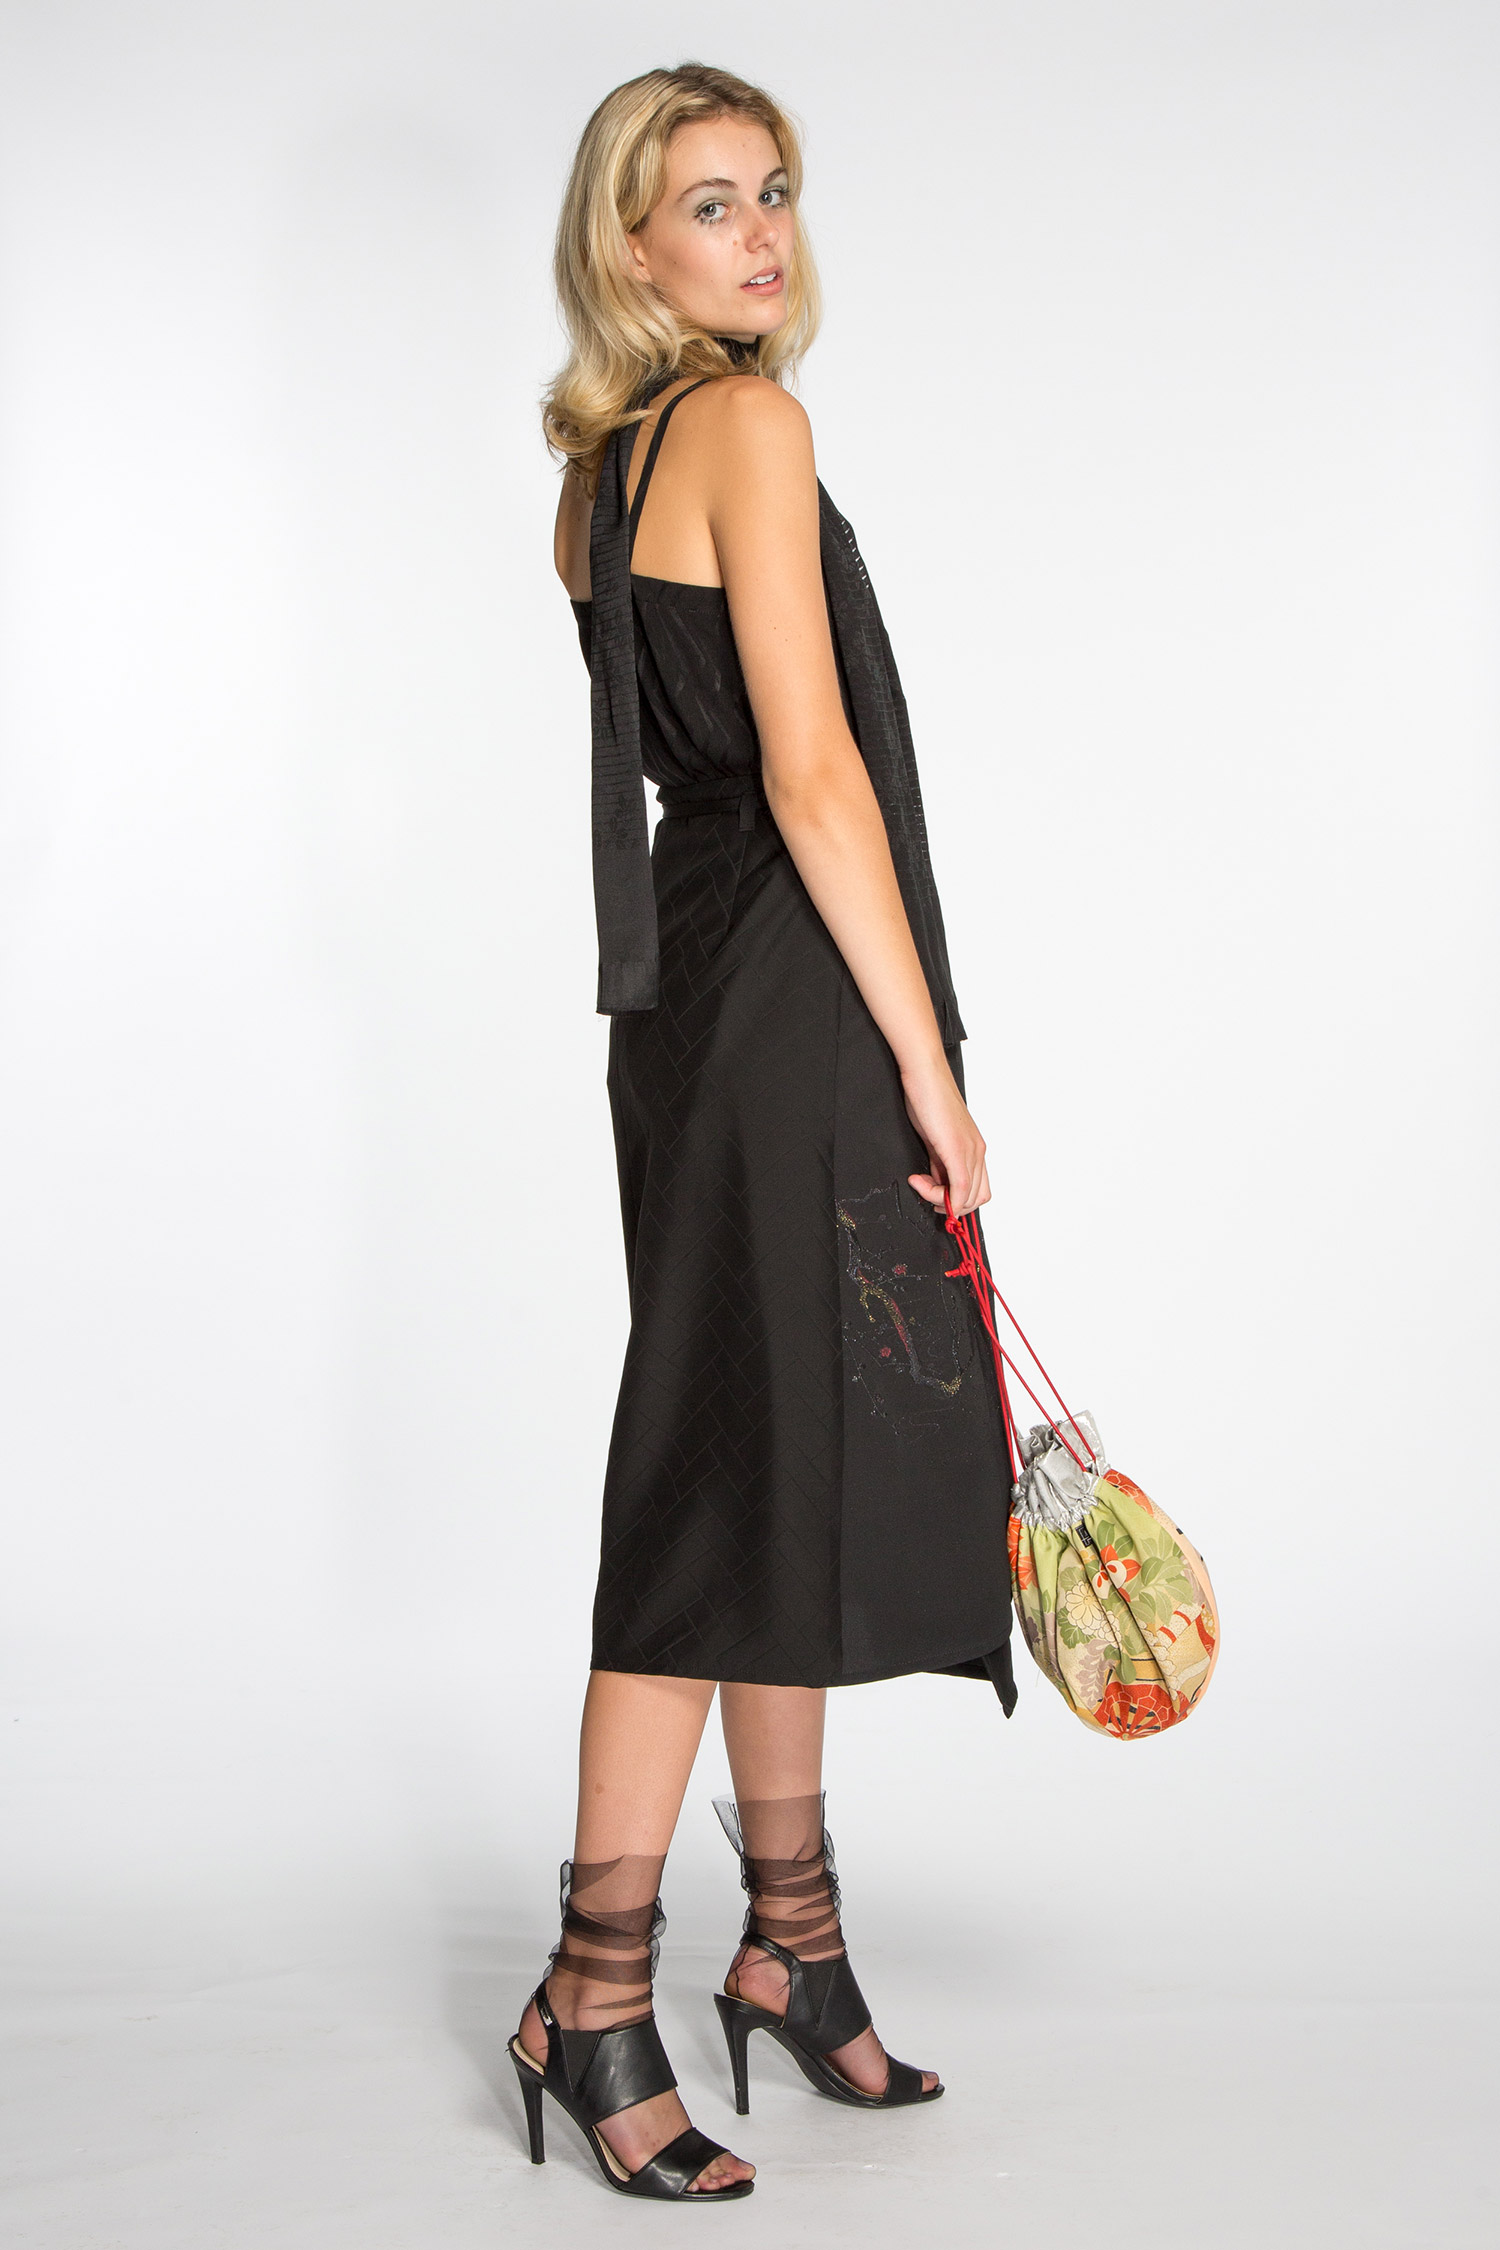 Look5-camisole-wrap-skirt-8-31.jpg